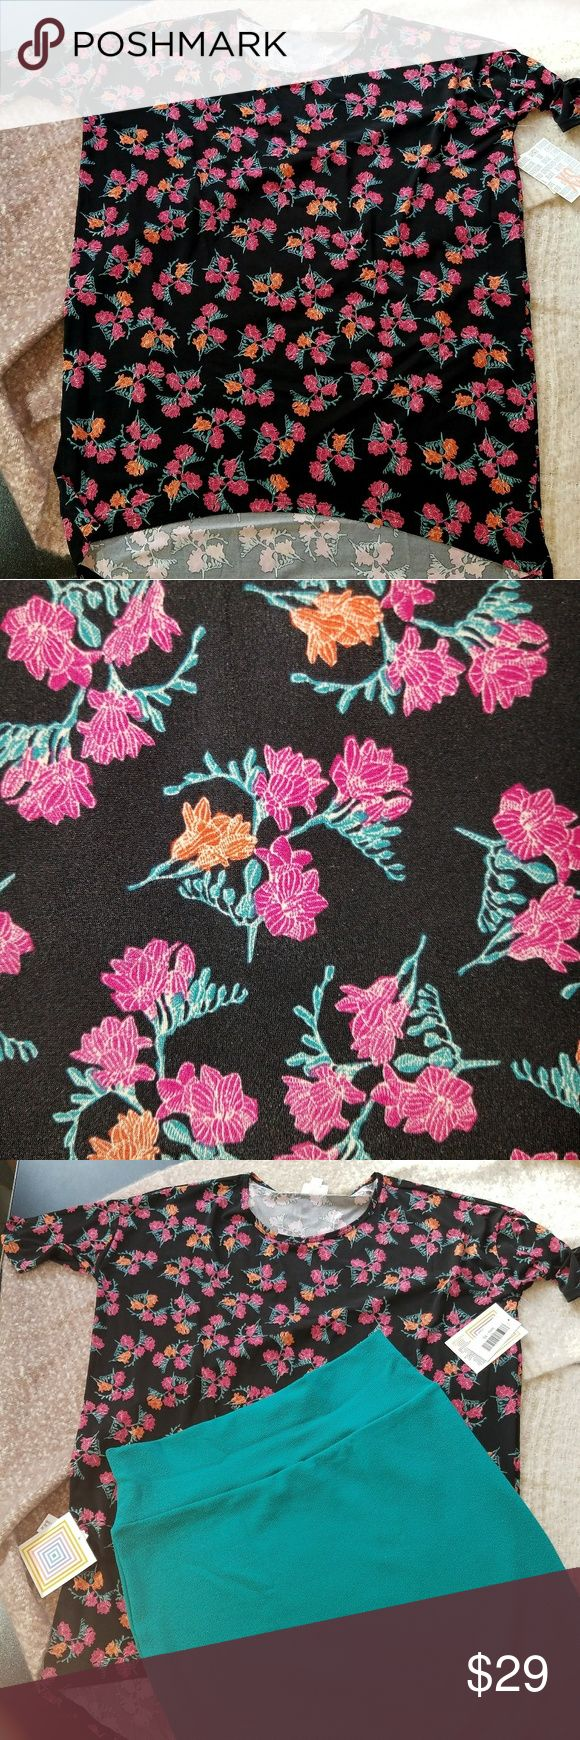 NWT Lularoe Irma black floral silky material This Irma is made of the slinky material. It's so soft and comfortable, and you can see by the photo of me wearing it on my size 12 body with an XL Cassie pencil skirt, the Irma runs pretty big, so keep that in mind. Desirable floral print. LuLaRoe Tops Blouses